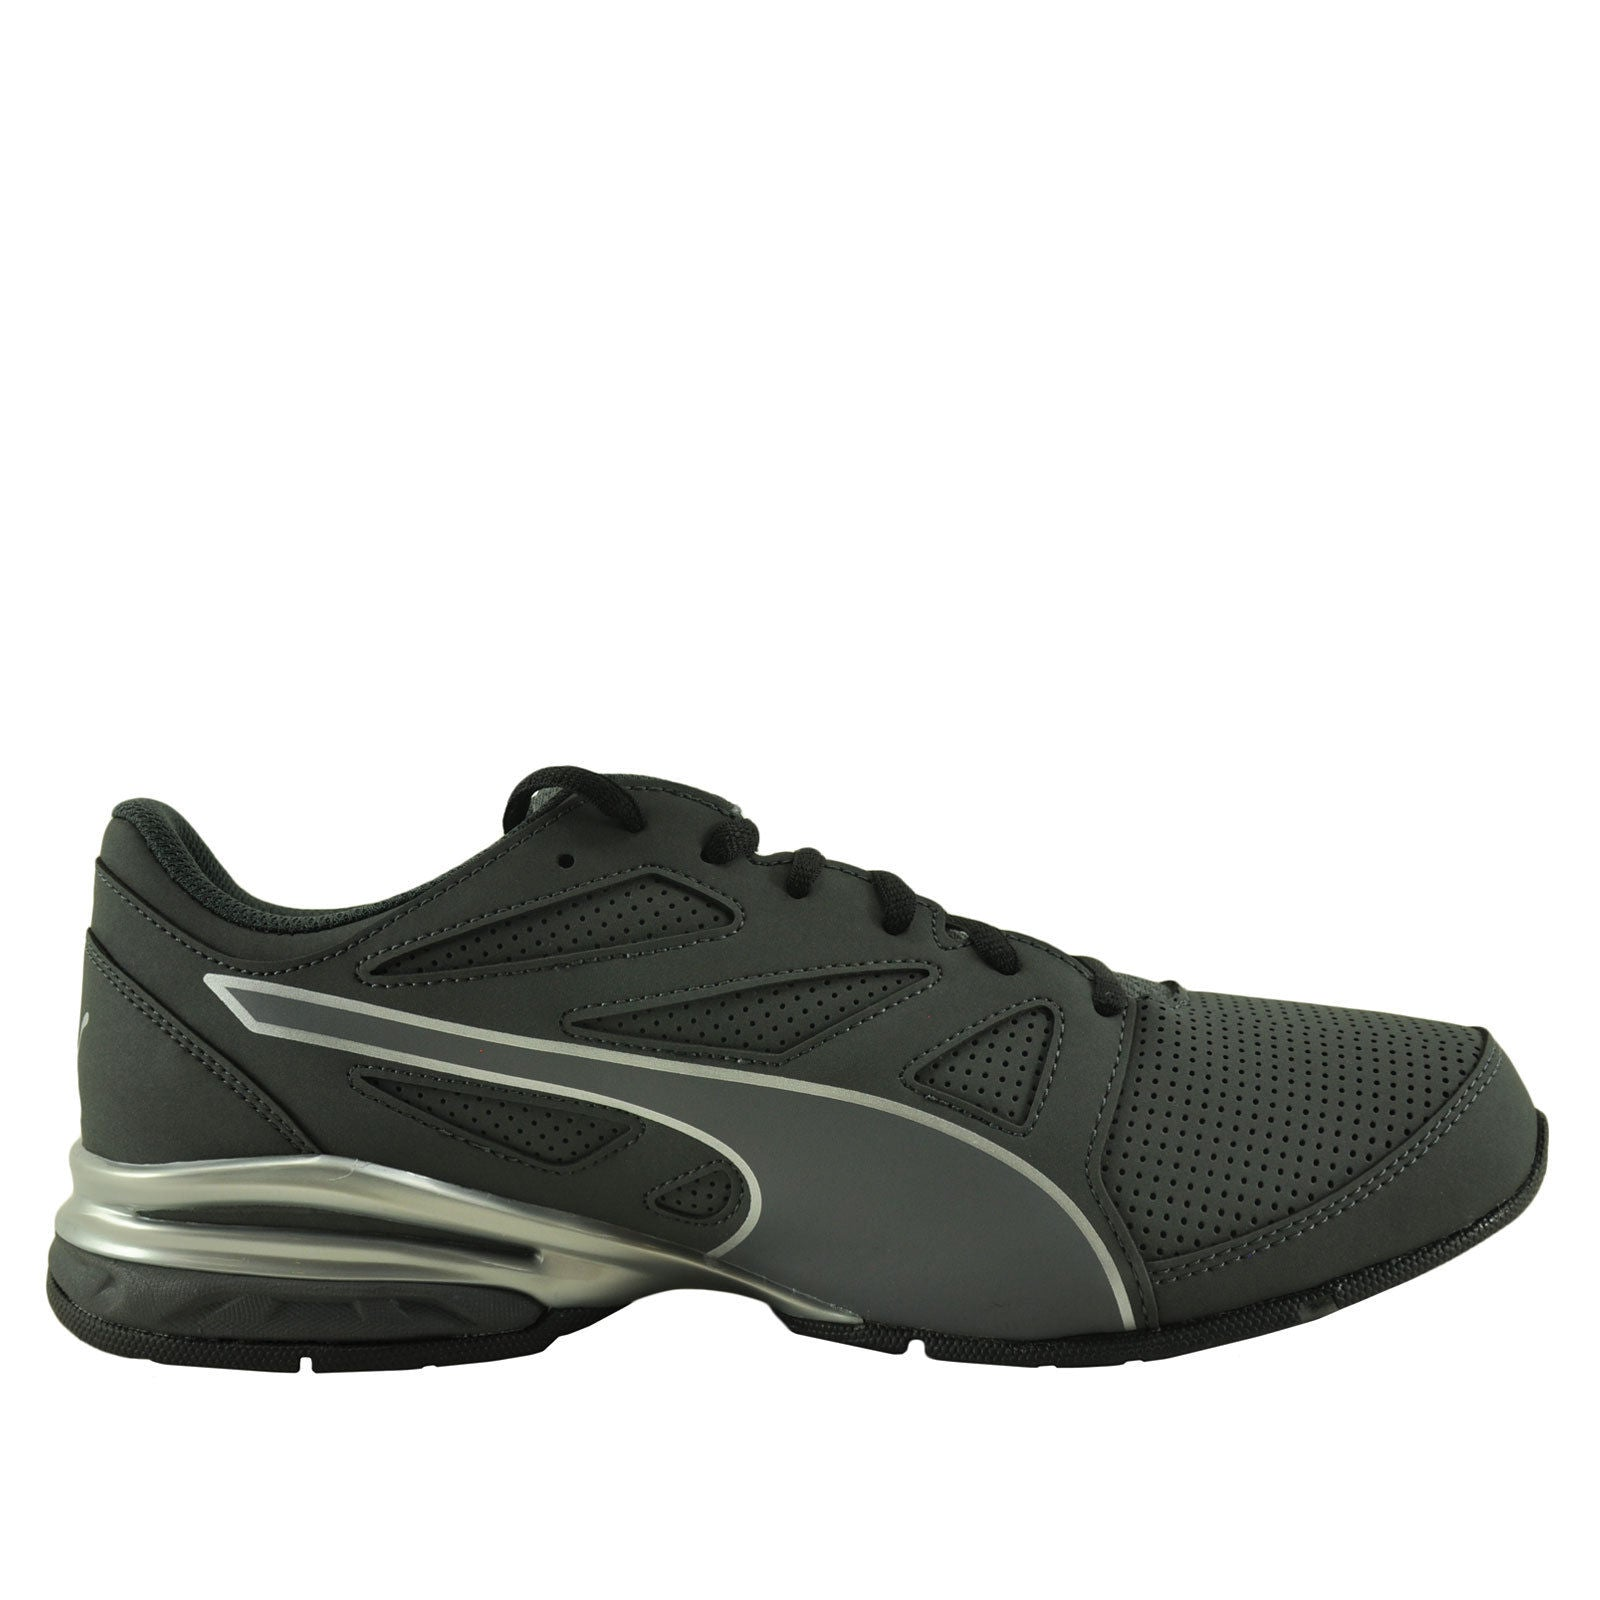 PUMA Tazon Modern SL FM- Dark Shadow-Silve